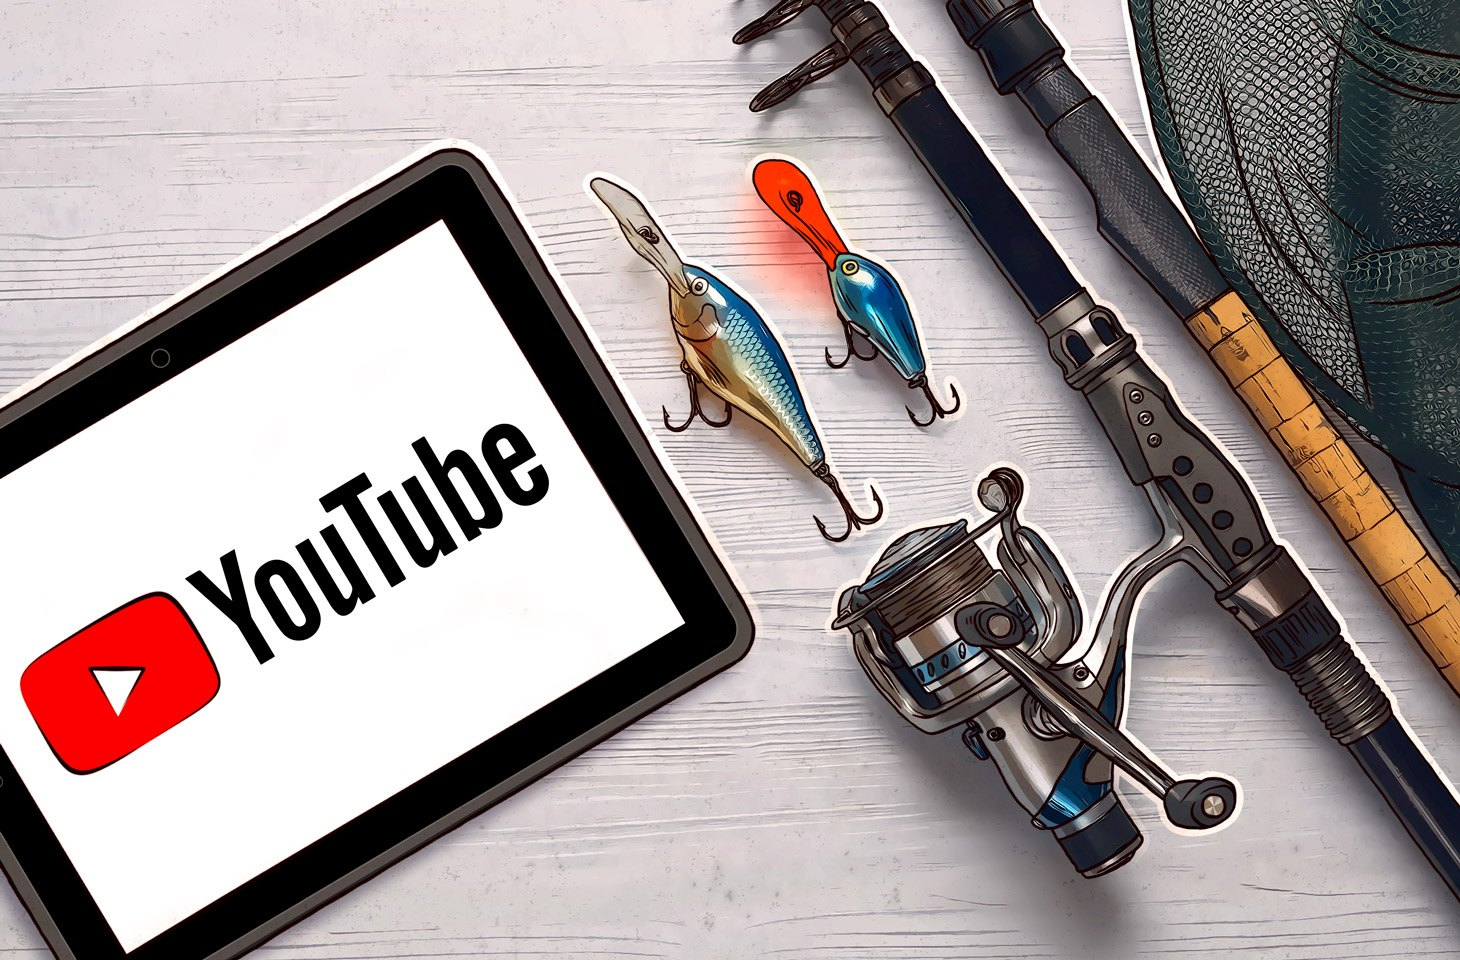 Dear YouTubers, phishers are after your accounts